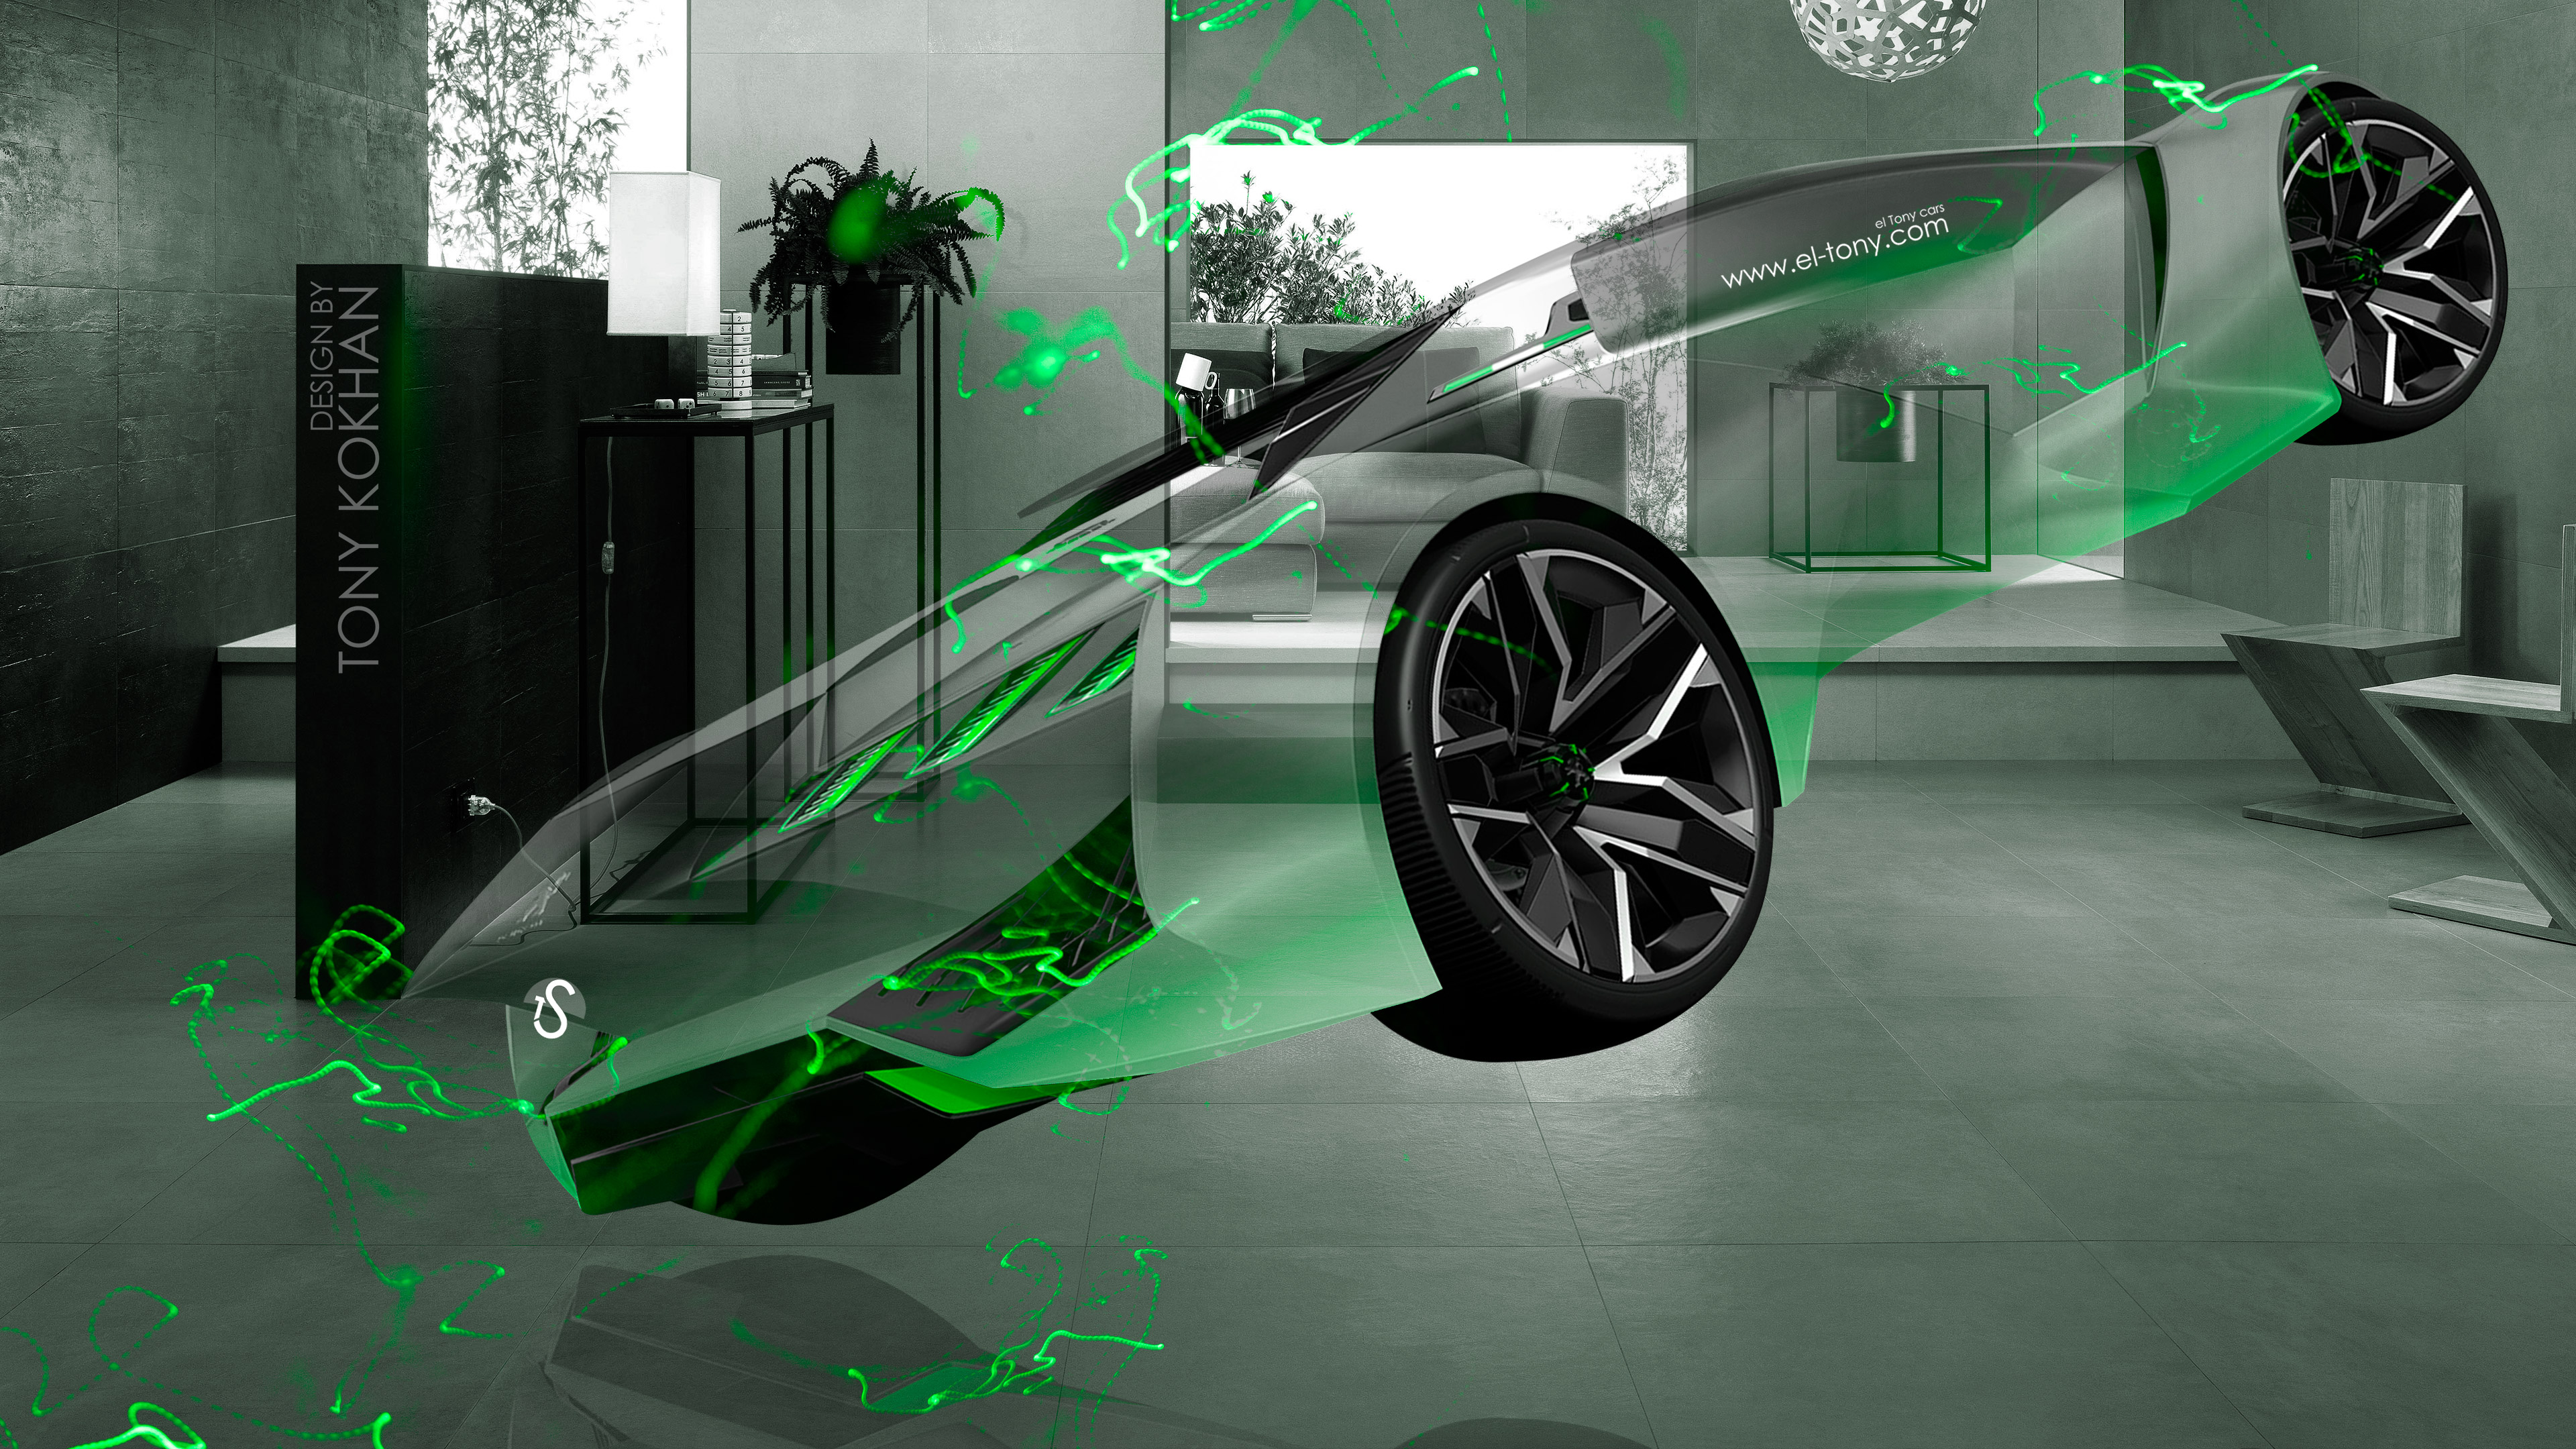 Peugeot-Vision-Gran-Turismo-3D-Fantasy-Crystal-Home-Fly-Energy-Car-2015-Green-Neon-Effects-4K-Wallpapers-design-by-Tony-Kokhan-www.el-tony.com-image